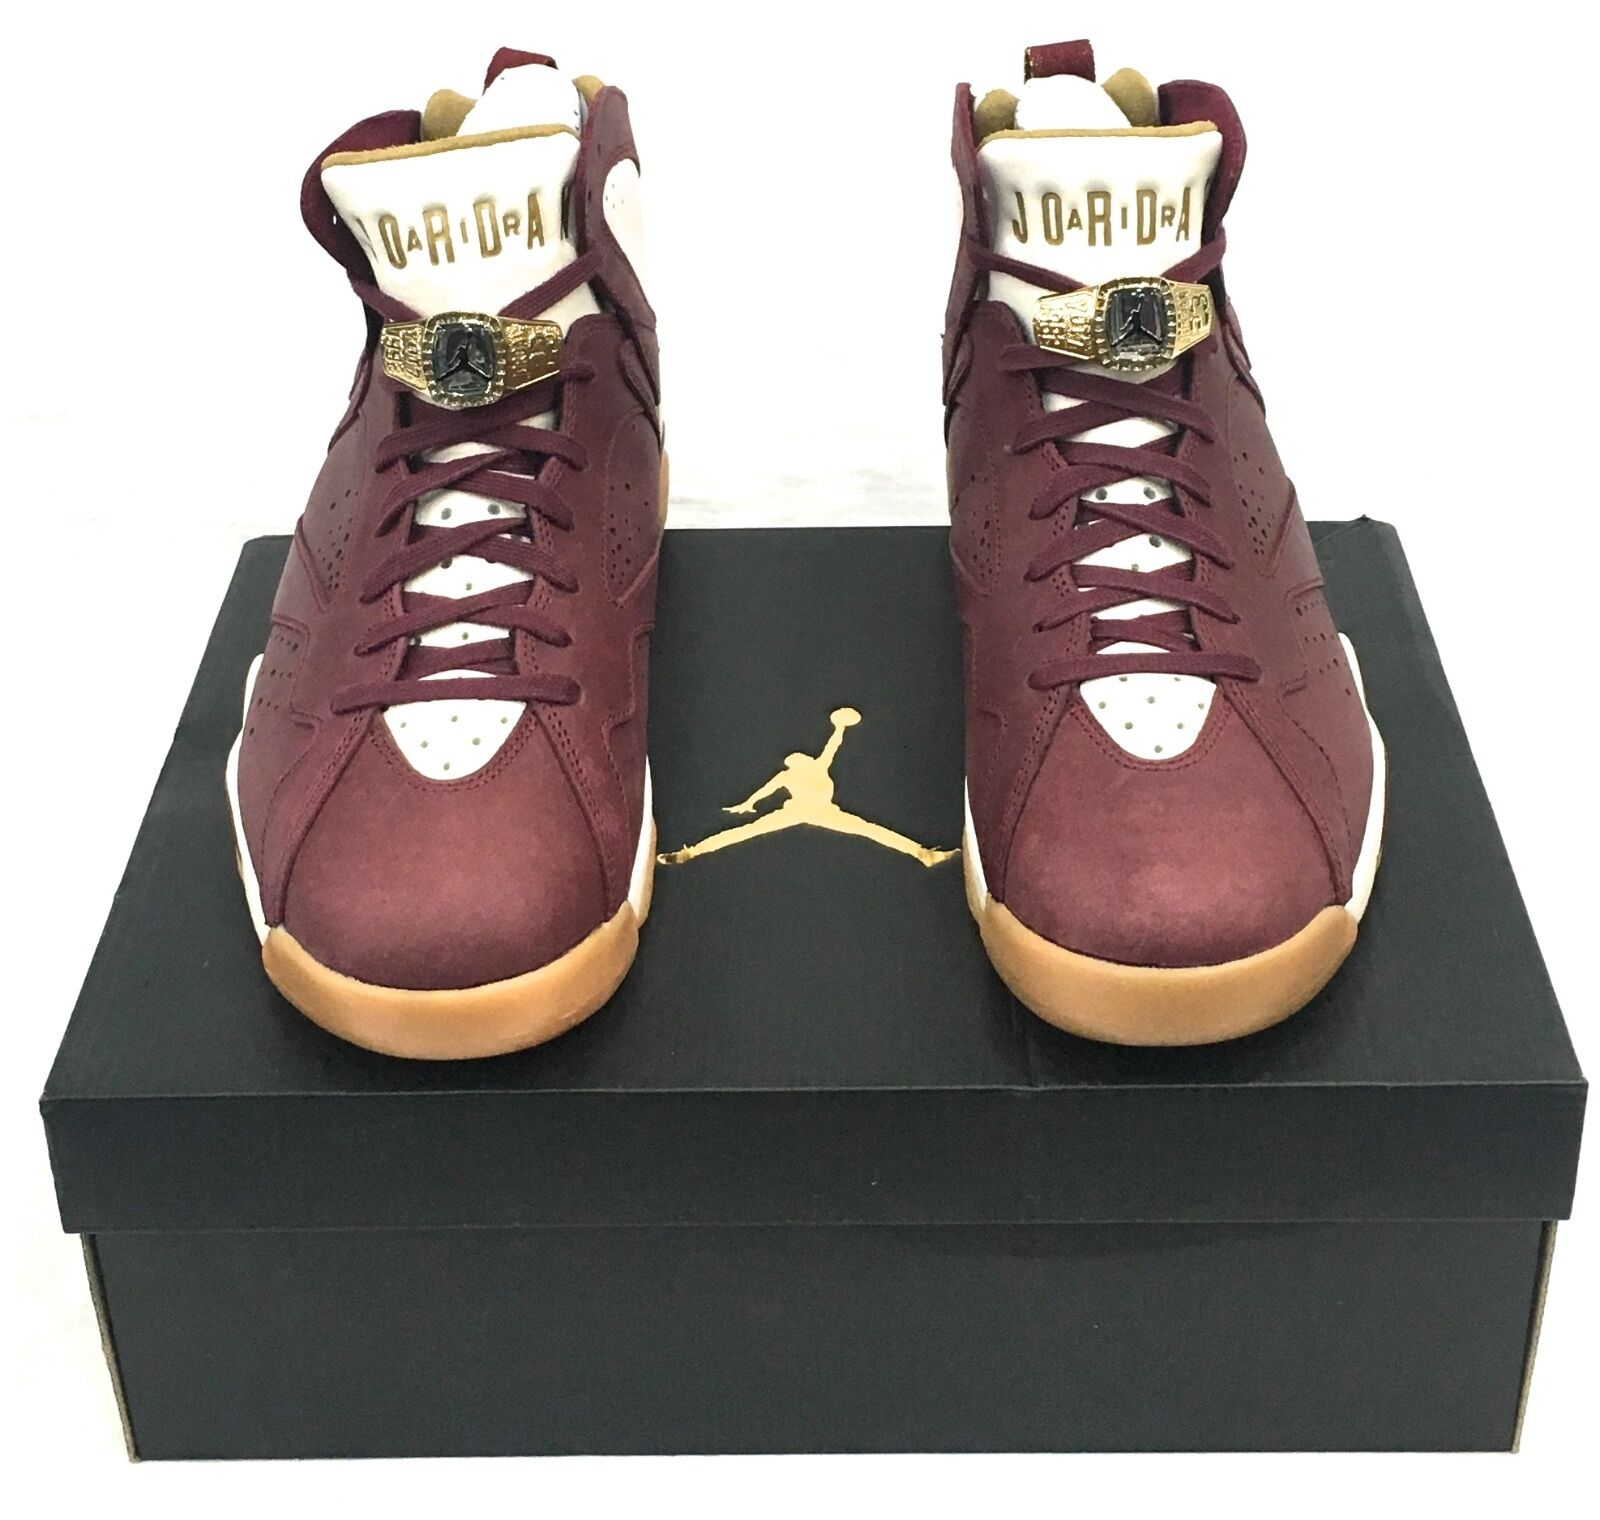 Nike Air Jordan VII 7 Retro C&C CIGAR Comfortable best-selling model of the brand